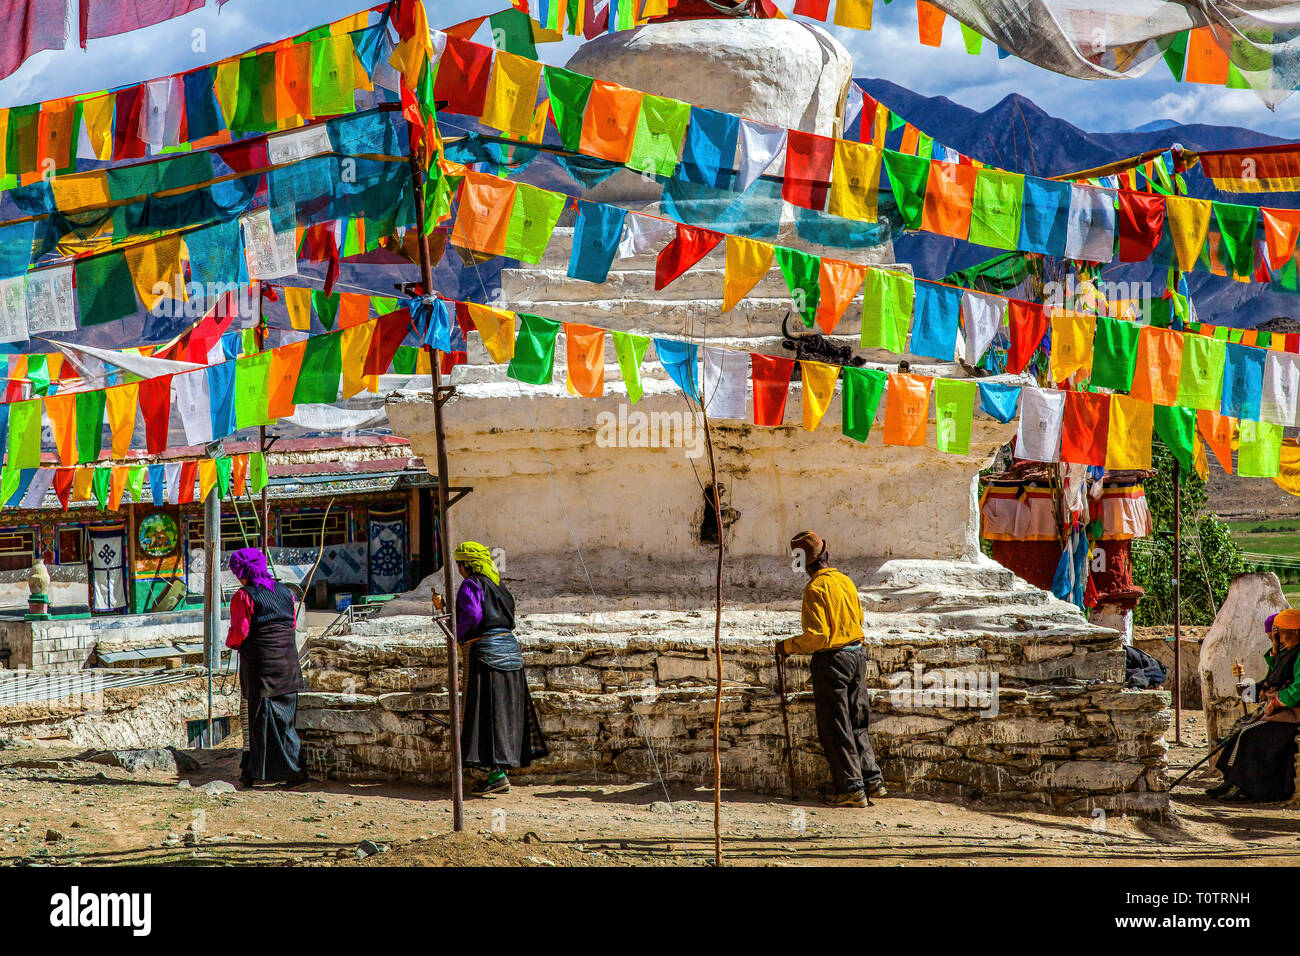 Stupa and prayerflags in a small mountain village below Ganden monastery, Tibe, China. - Stock Image